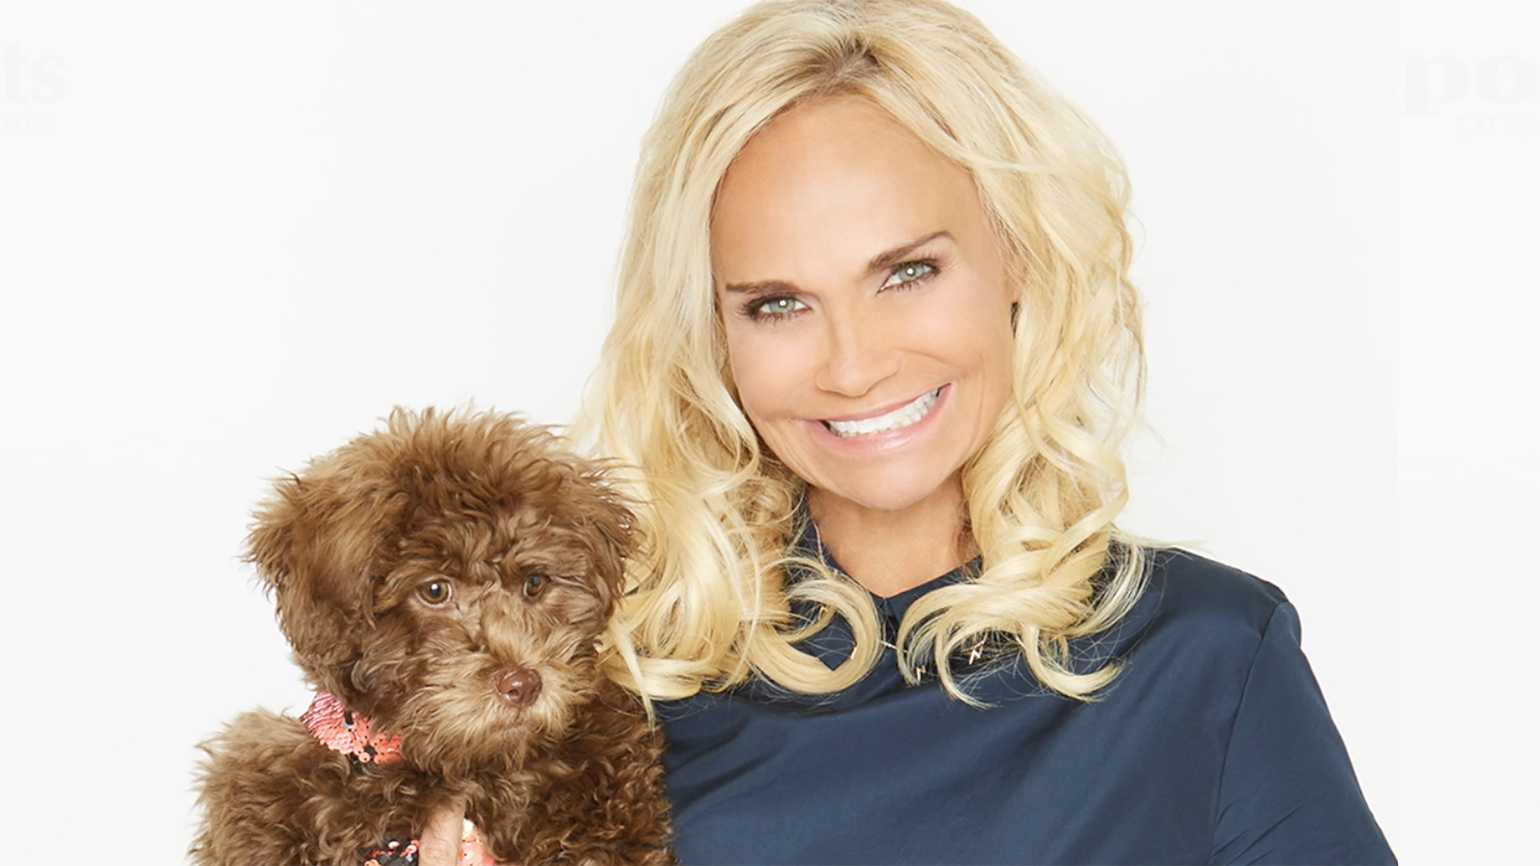 Kristin with her new dog, Thunder, named in honor of her favorite NBA team, the Oklahoma City Thunder